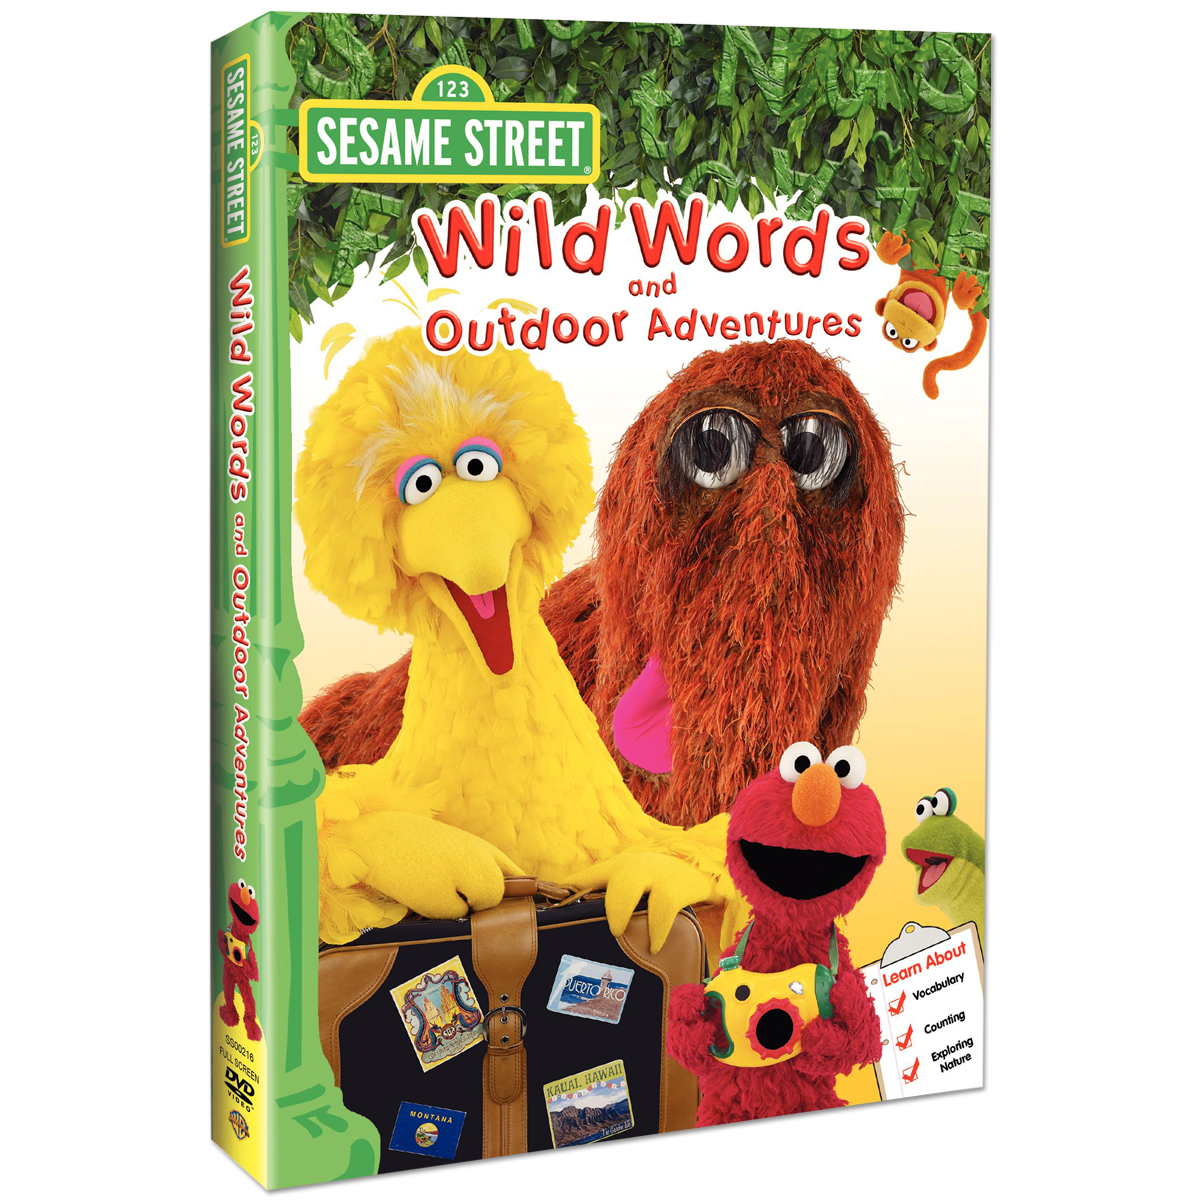 Wild Words & Outdoor Adventures DVD